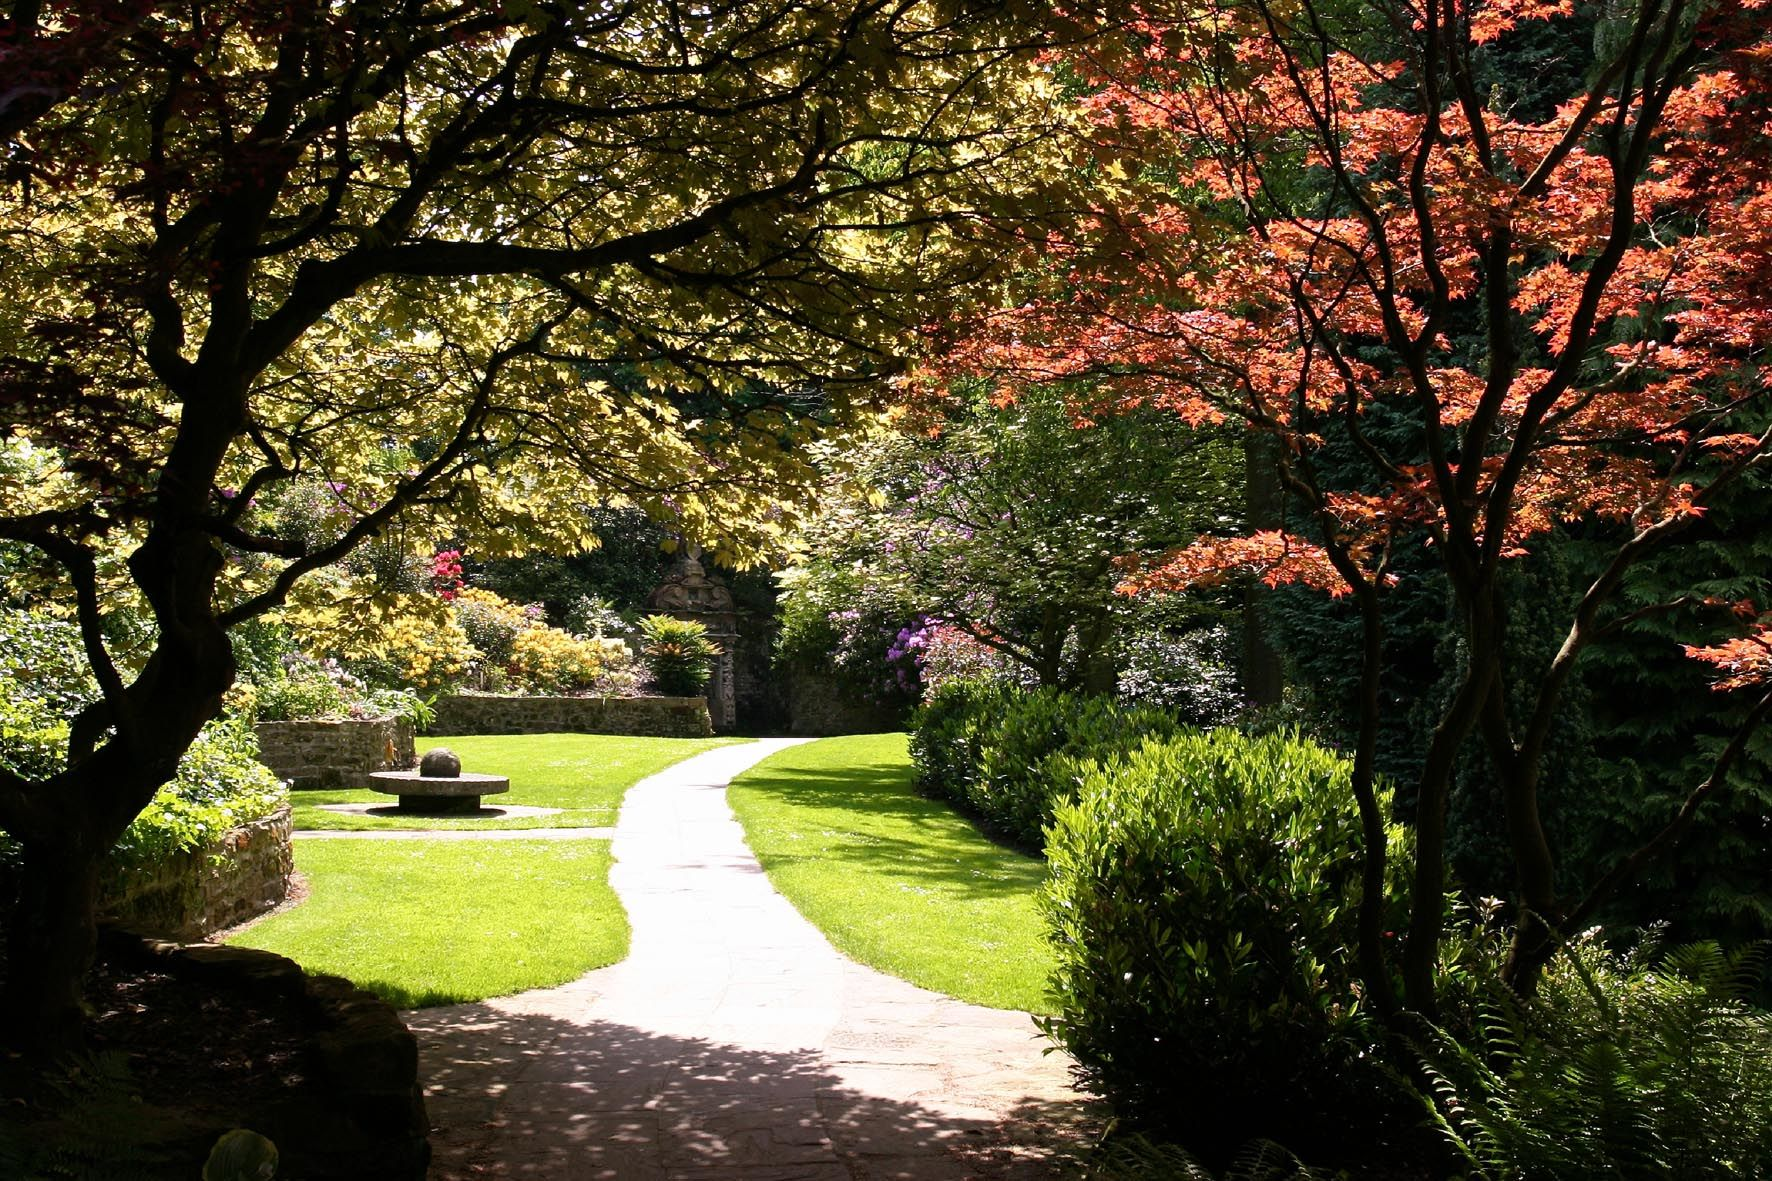 English country garden | photography | Pinterest | English country ...